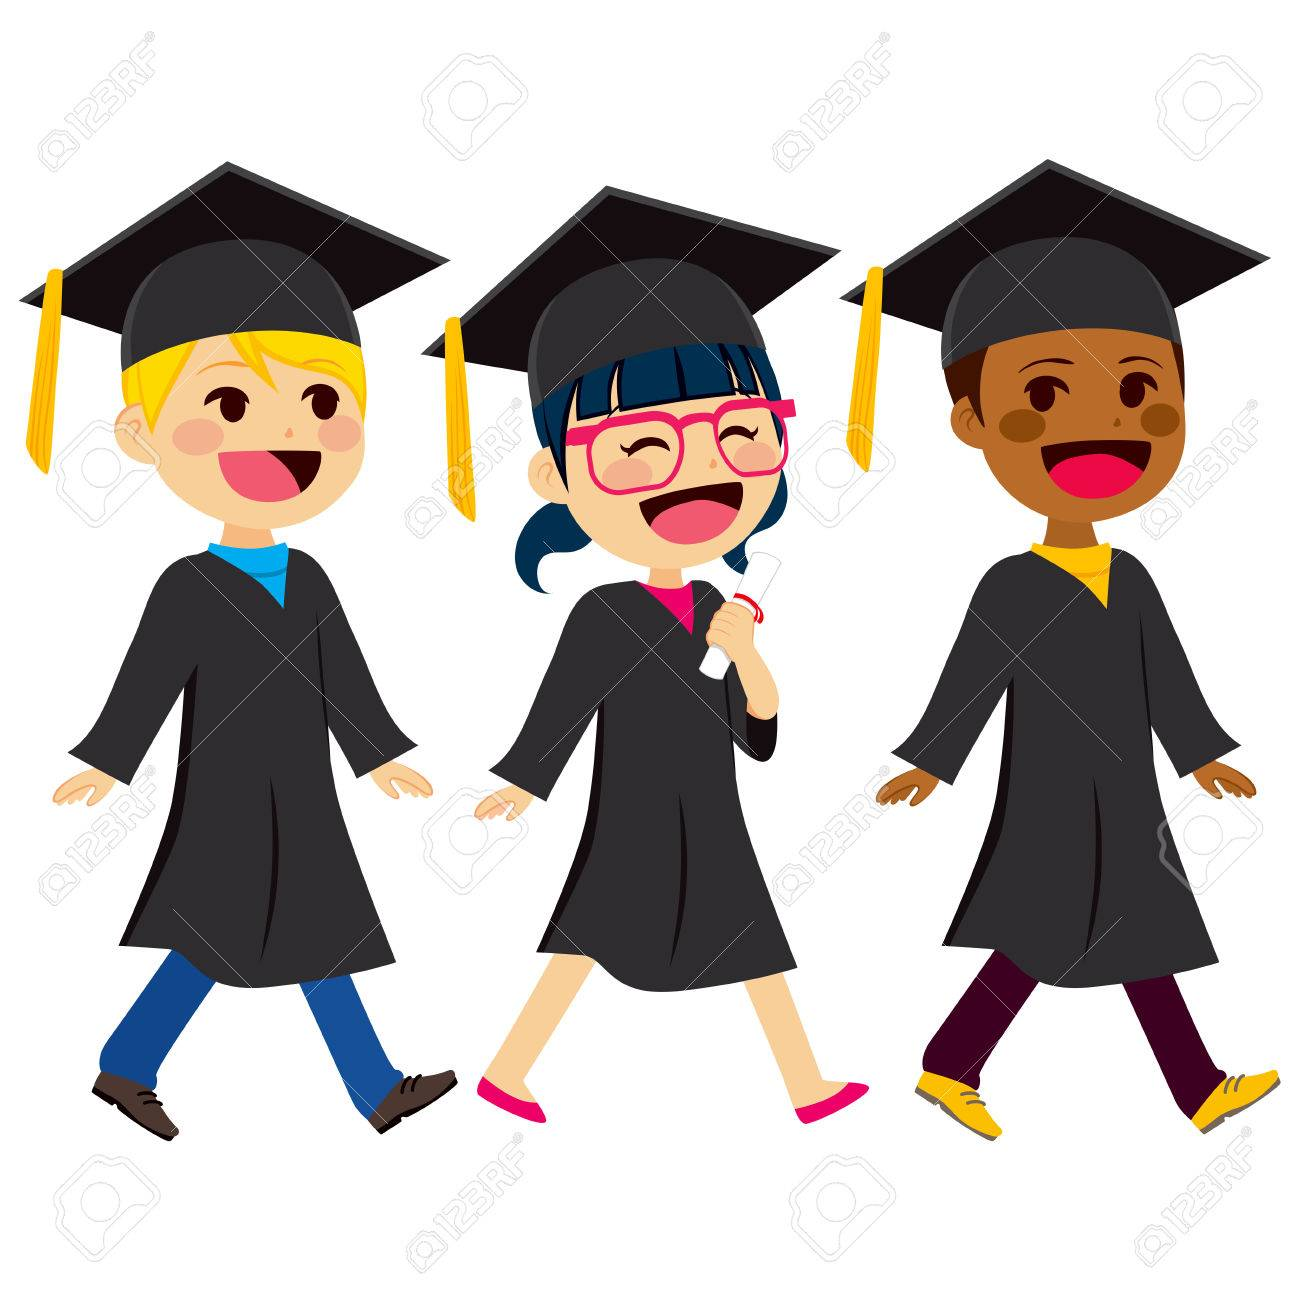 Cute Kids Of Different Ethnicity With Black Graduation Gown And ...